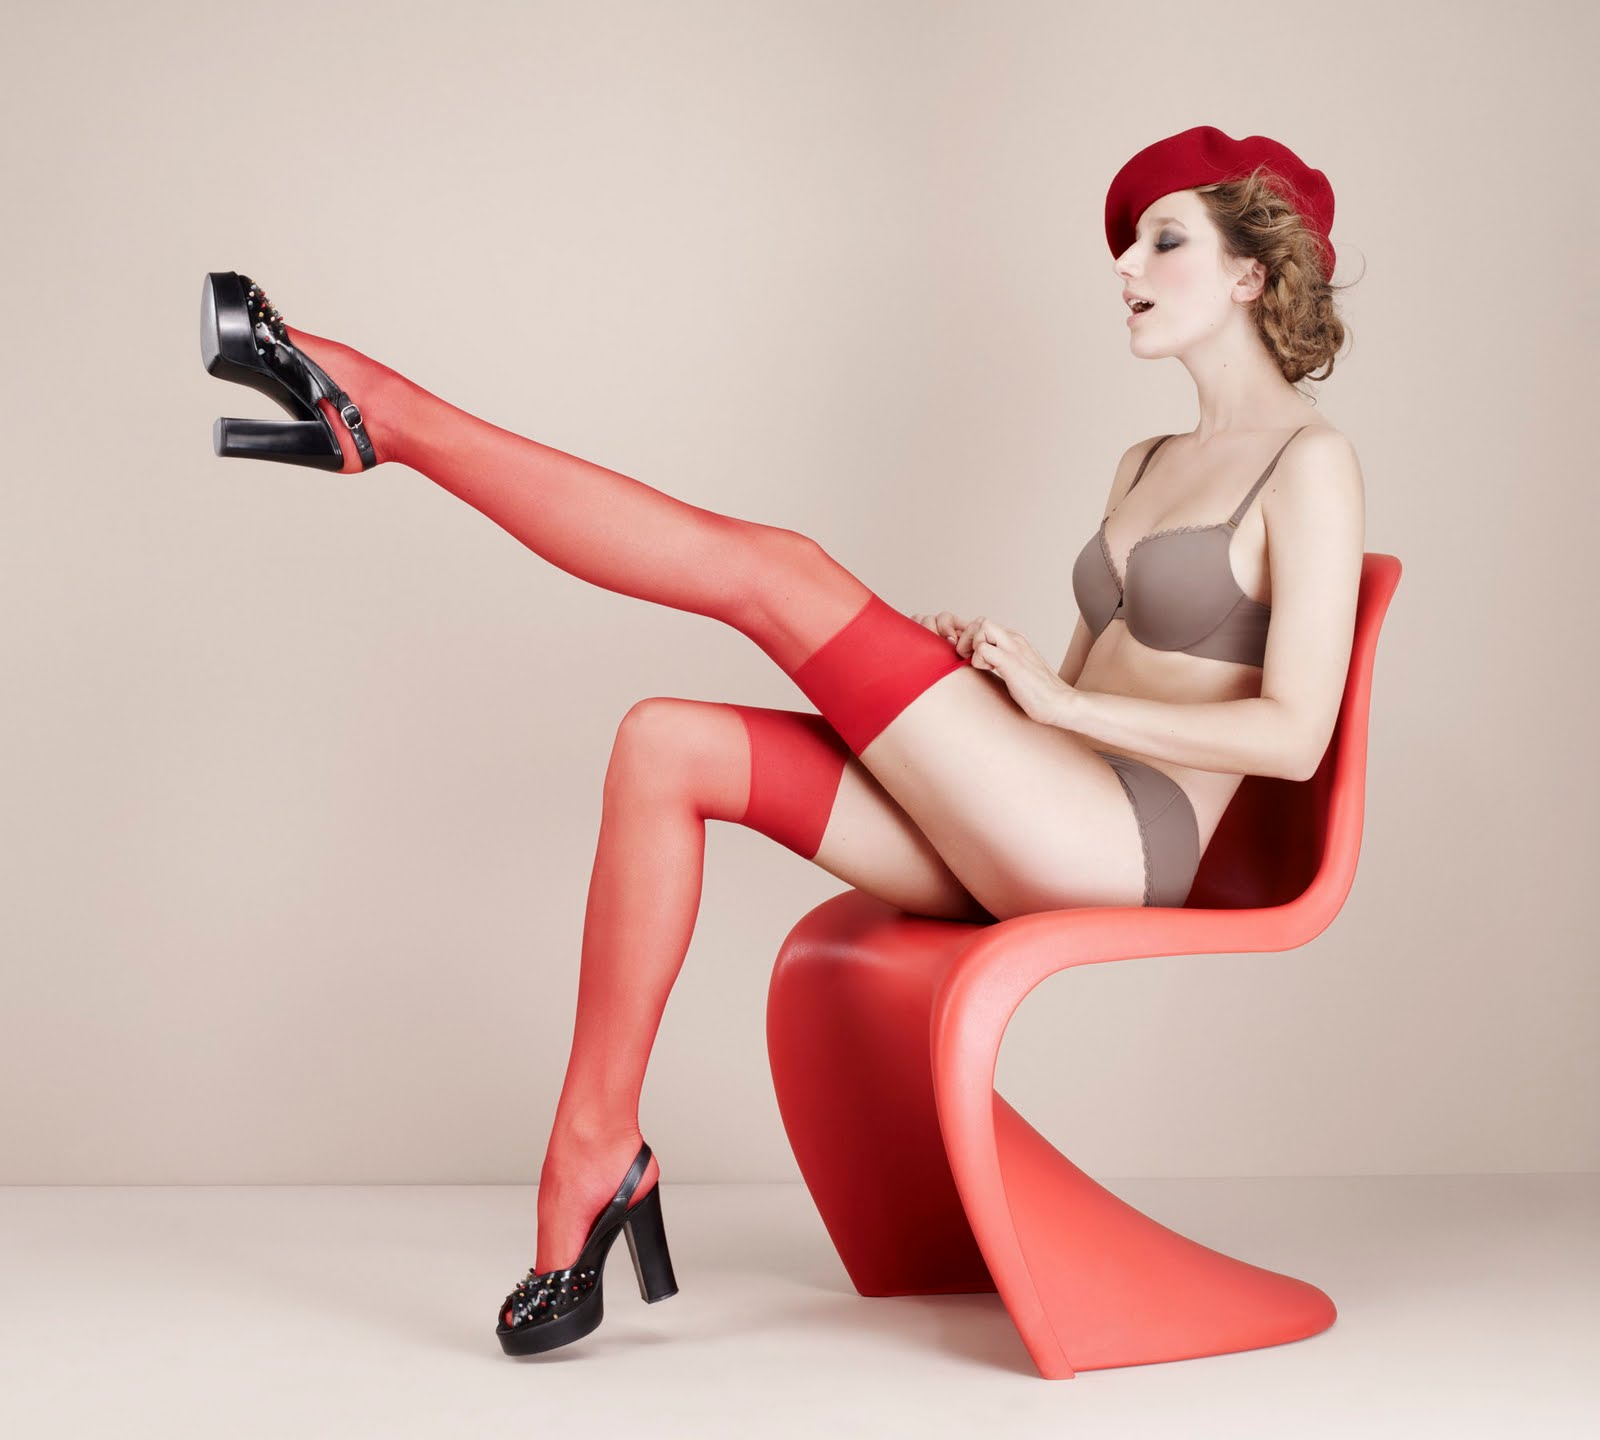 Pin up style nude photography